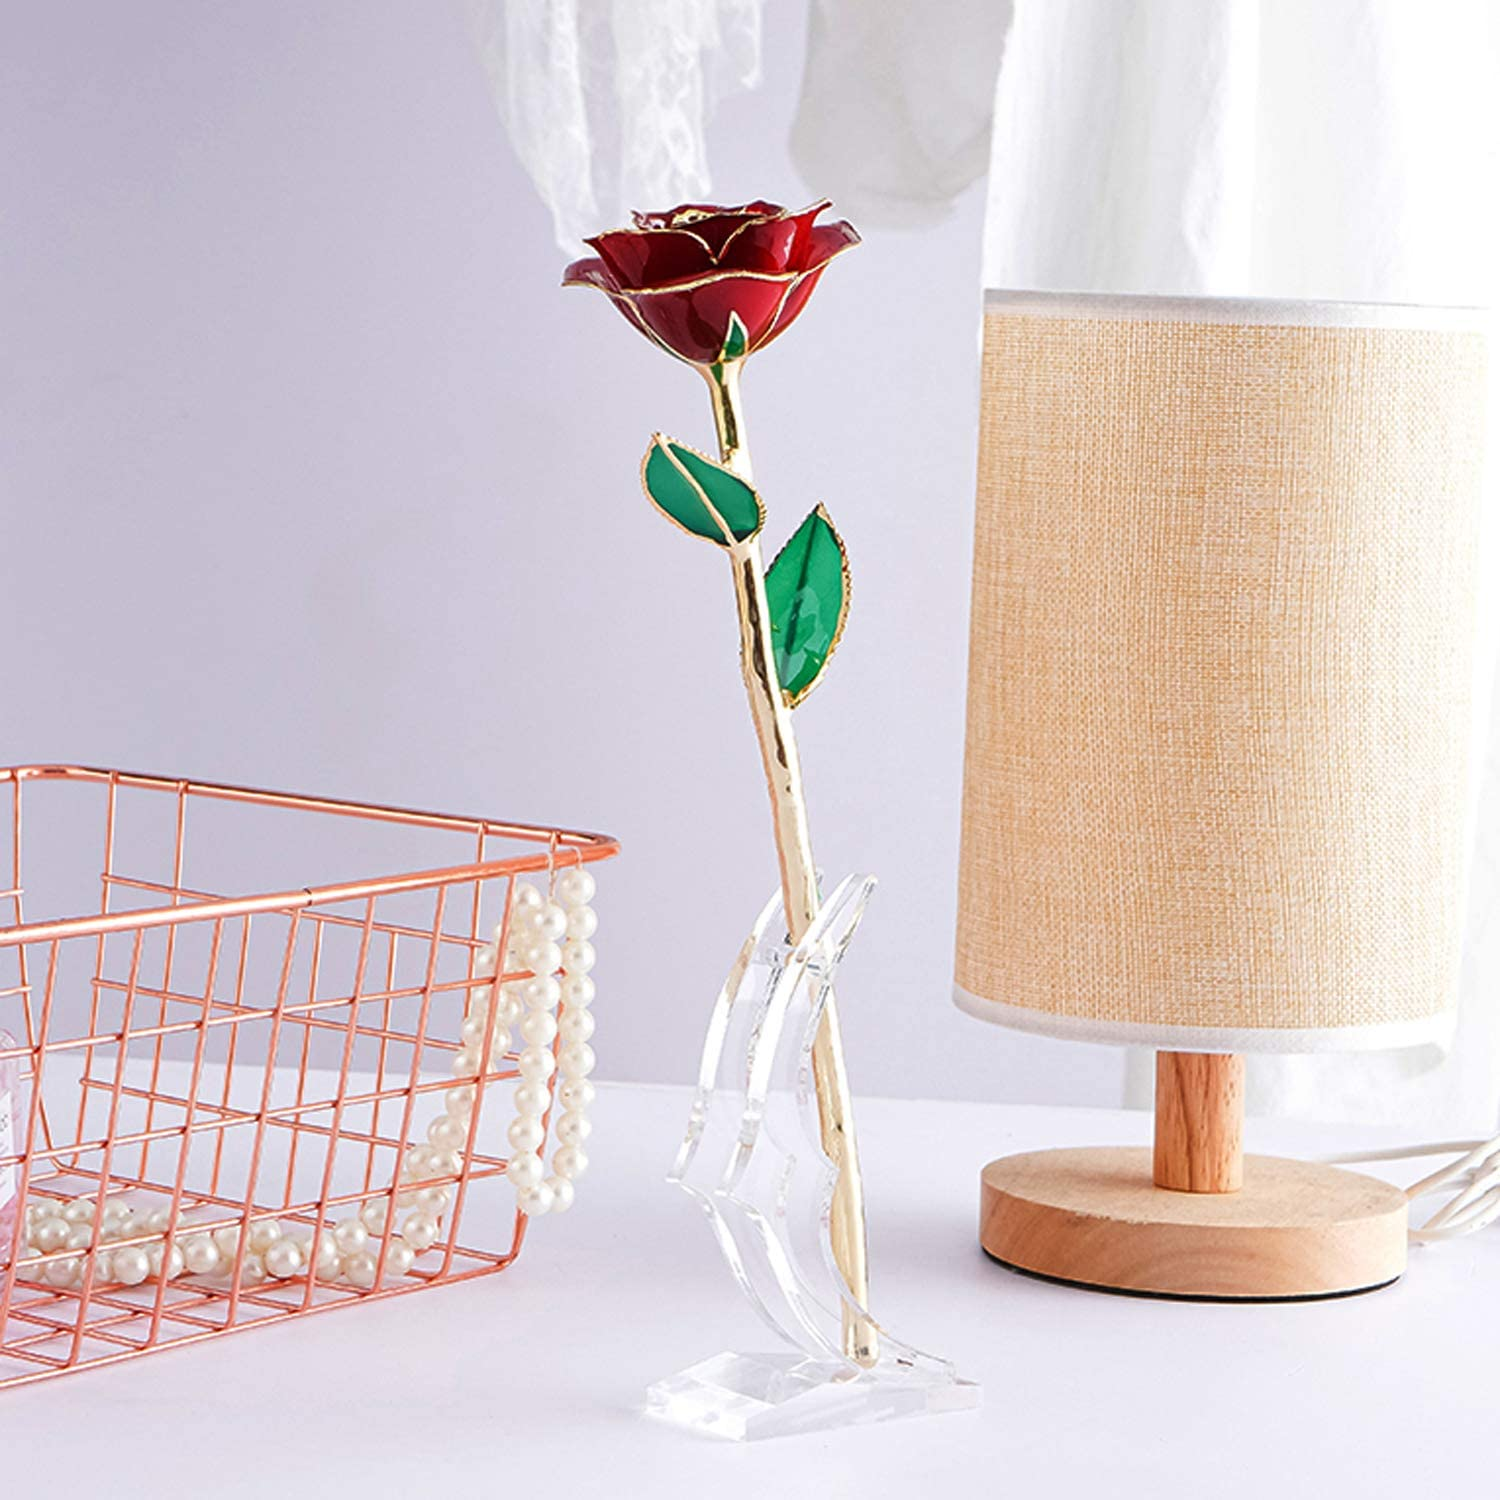 BEFINR Beauty and The Beast Rose Enchanted Flower with LED Light in Glass Dome for Christmas Valentines Day Mothers Day Birthday Best Gifts for Girlfriend Wife Women Her Colorful